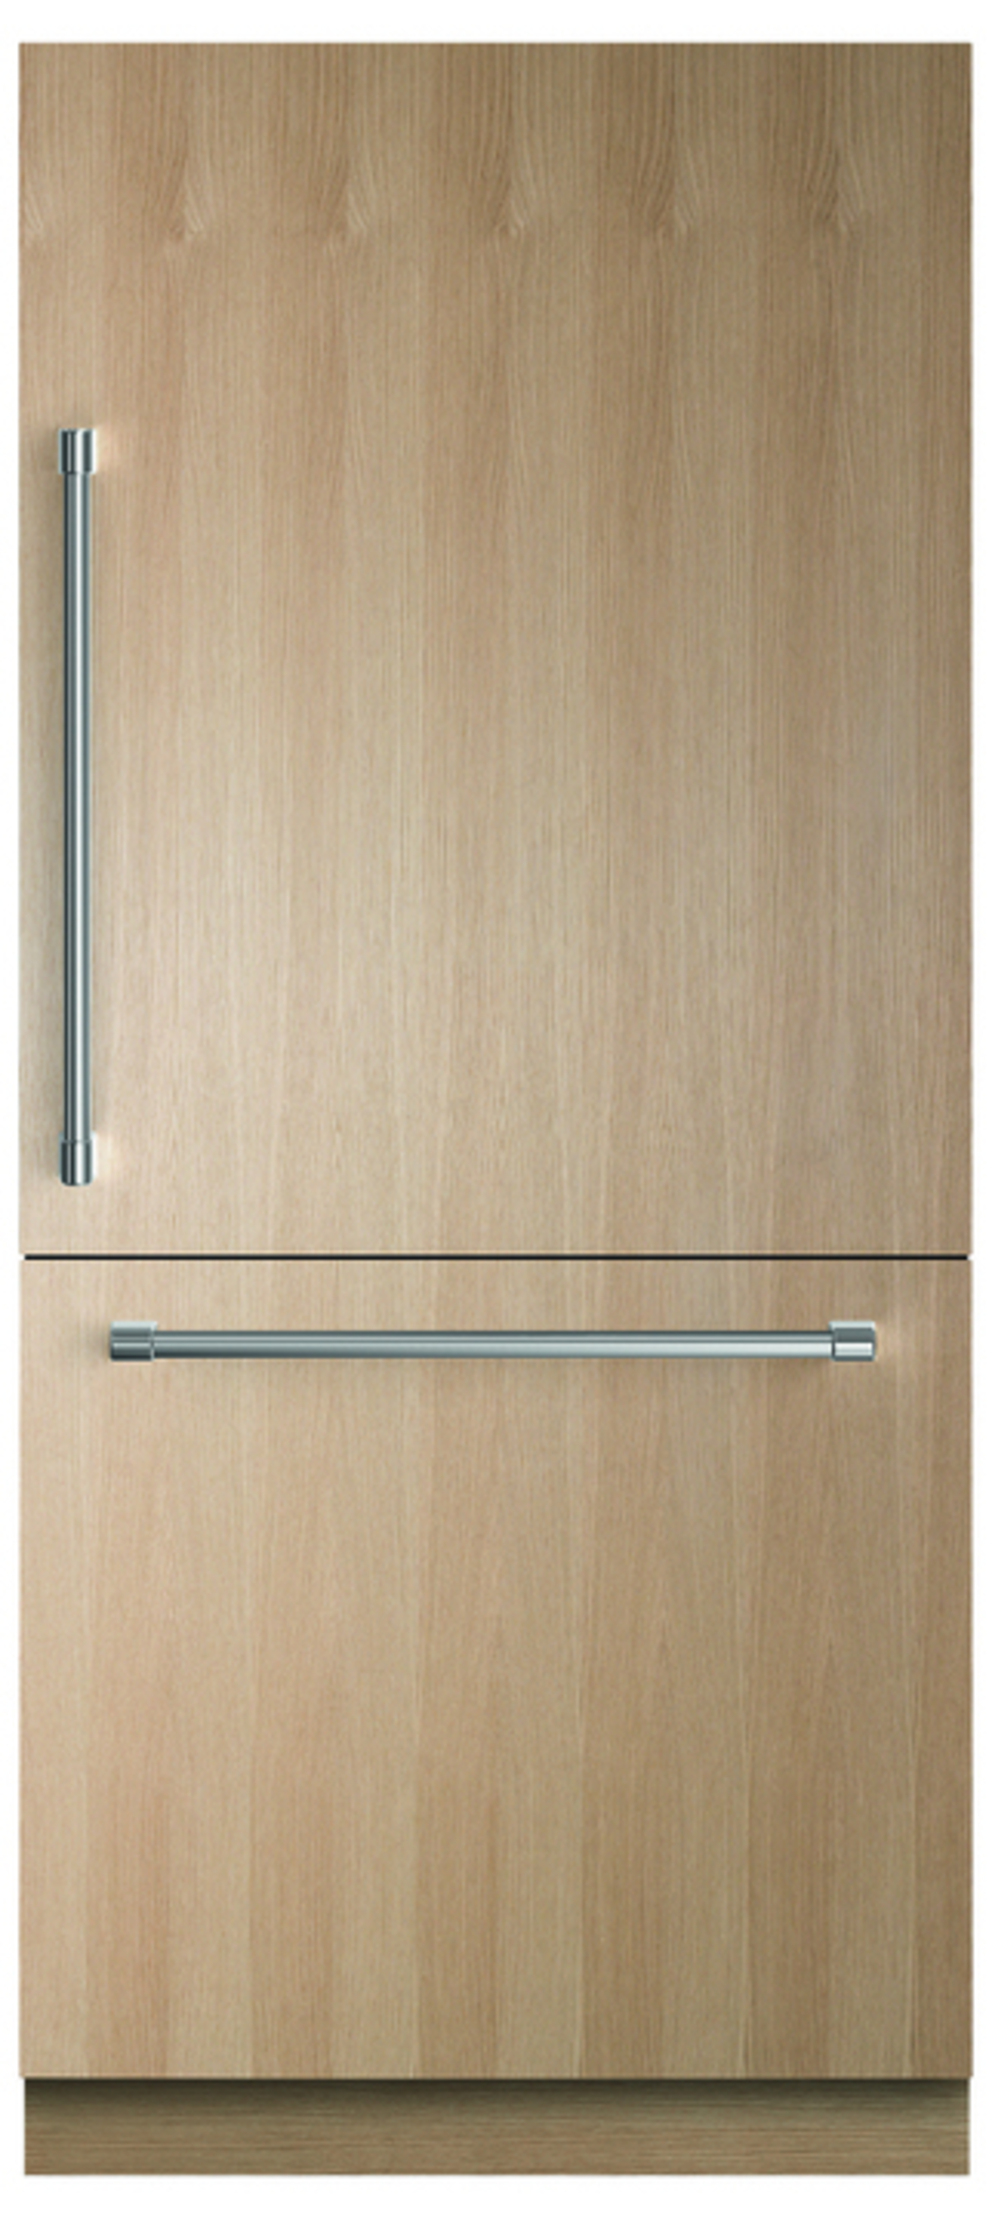 Fridges DCS RS36W80RJC1